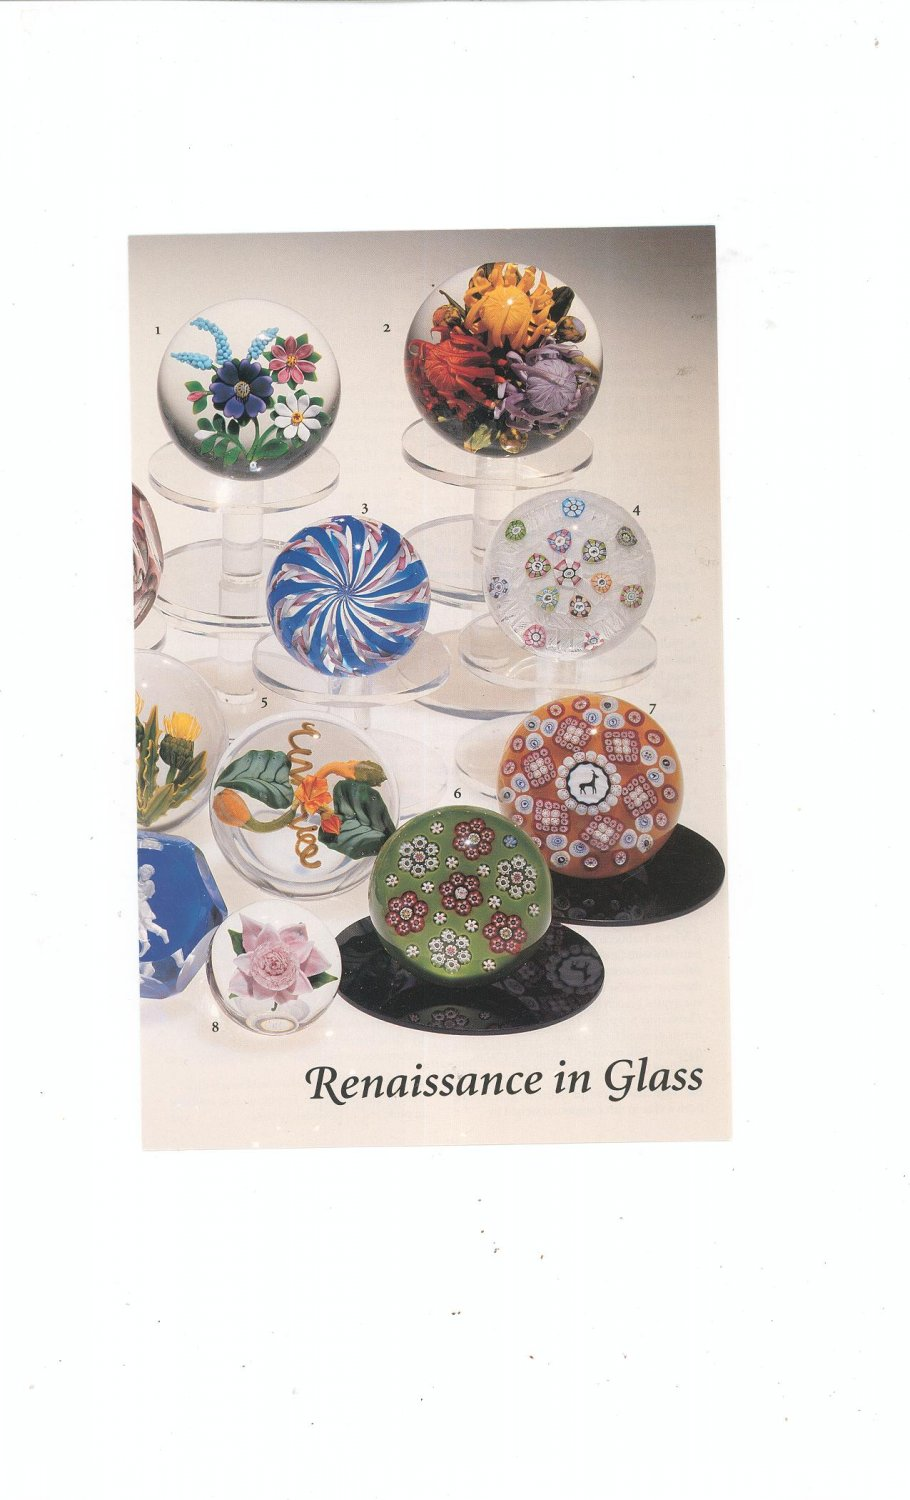 Renaissance In Glass Catalog / Brochure by L. H. Selman Ltd. Paperweights